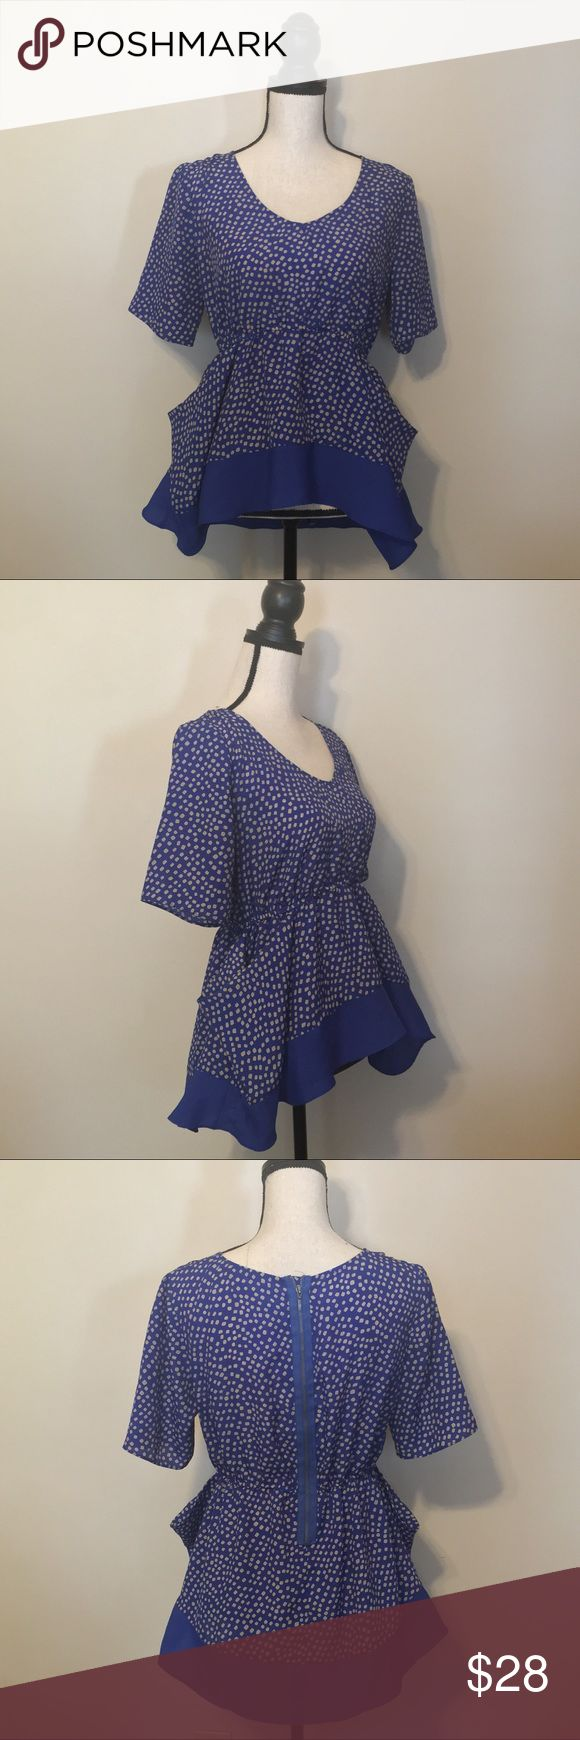 BCBGeneration Blue and Gold Dotted Top BCBGeneration Blue and Gold Dotted Top BCBGeneration Tops Blouses